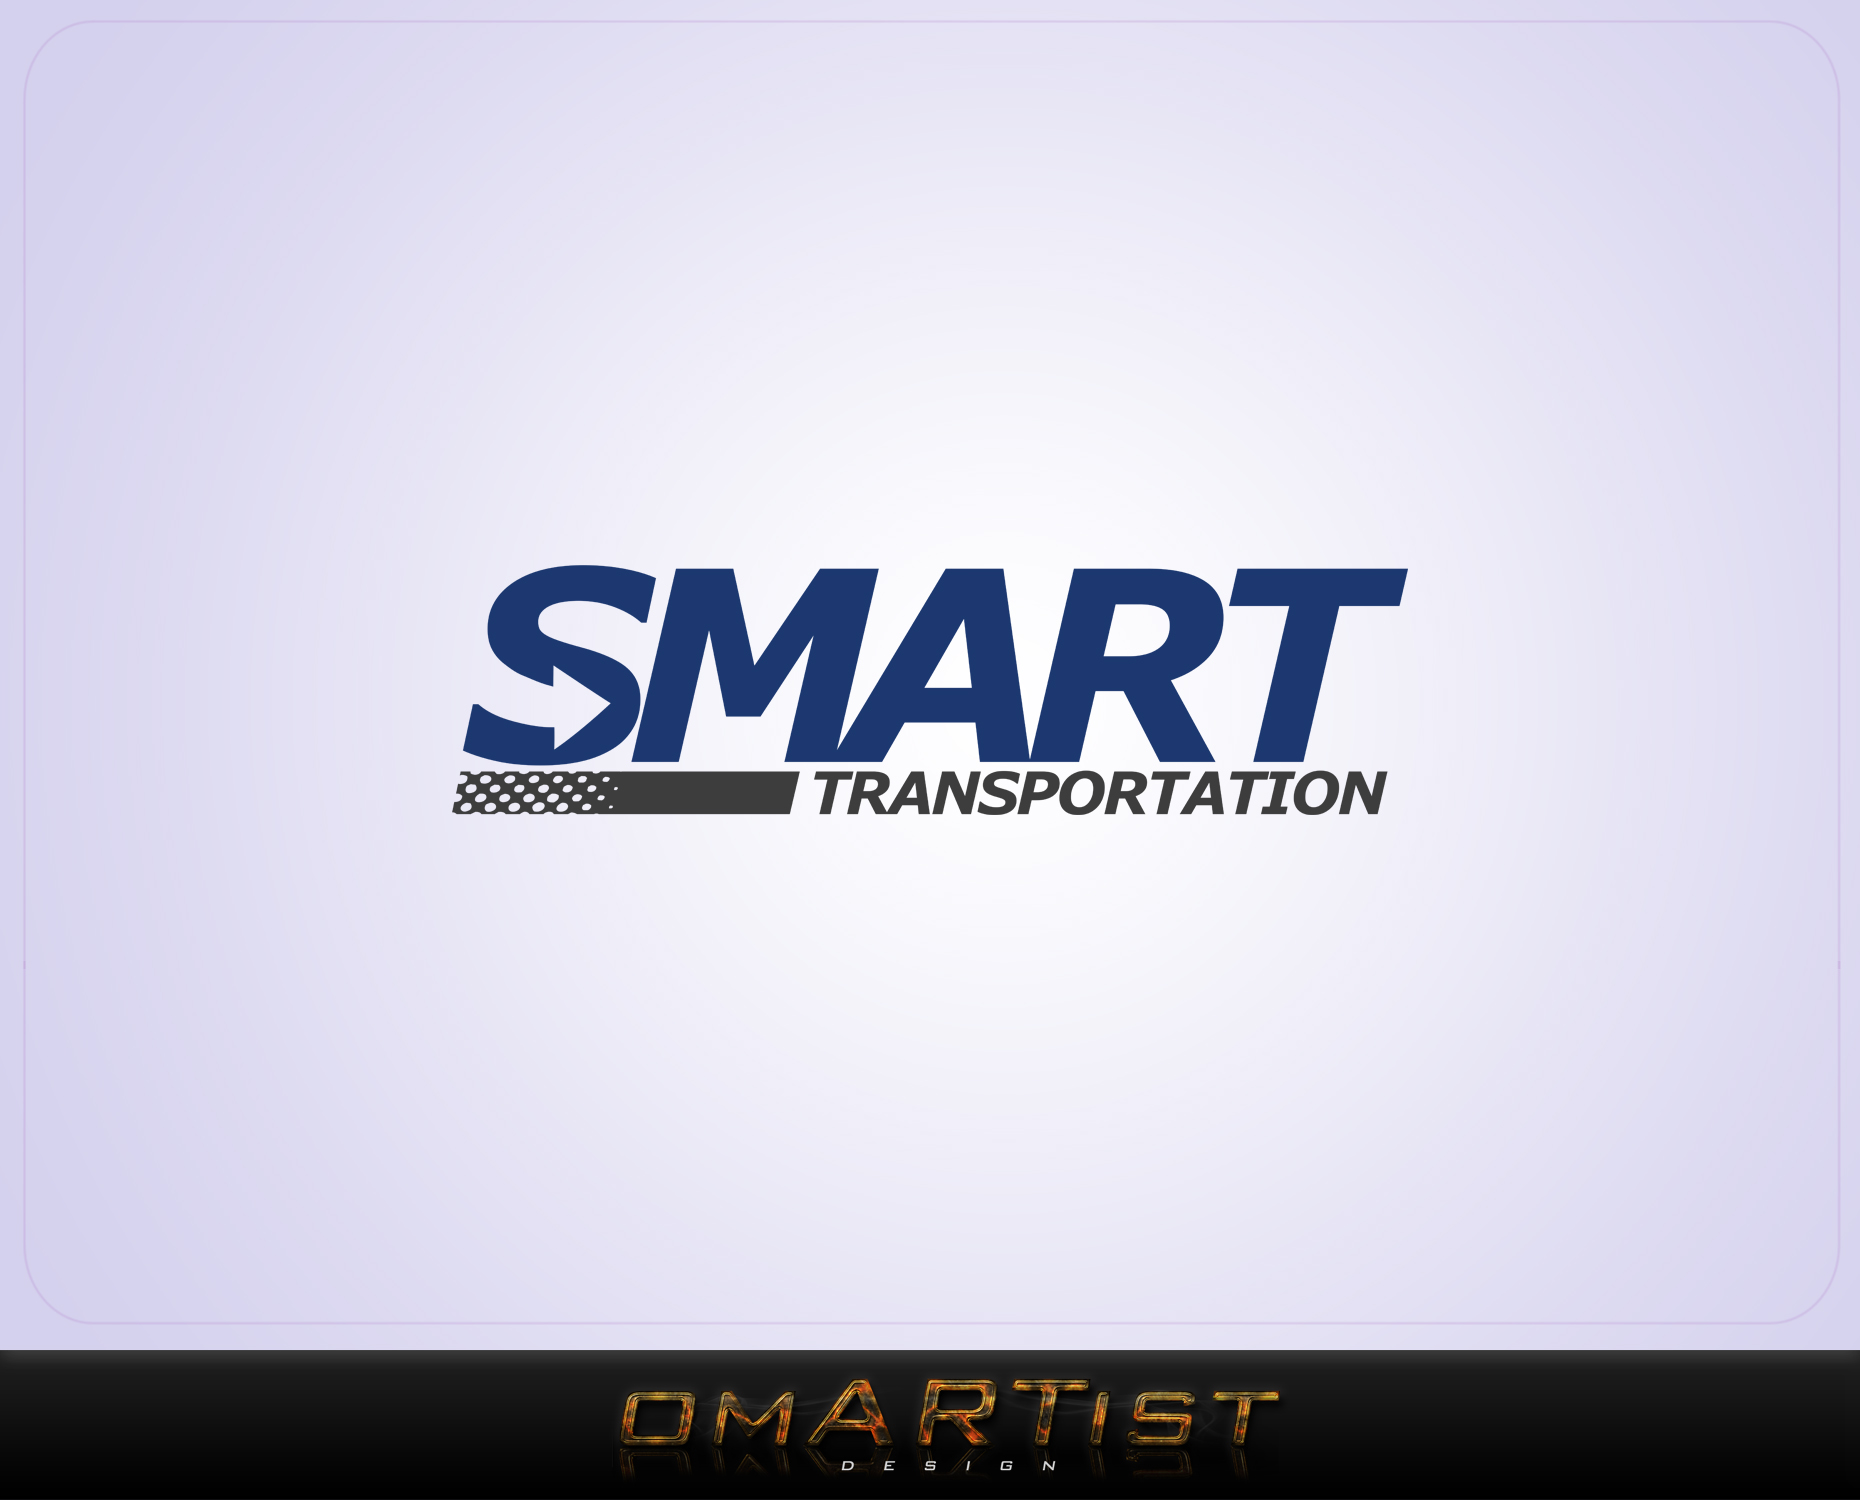 Logo Design by omARTist - Entry No. 77 in the Logo Design Contest Imaginative Logo Design for Smart Transportation.